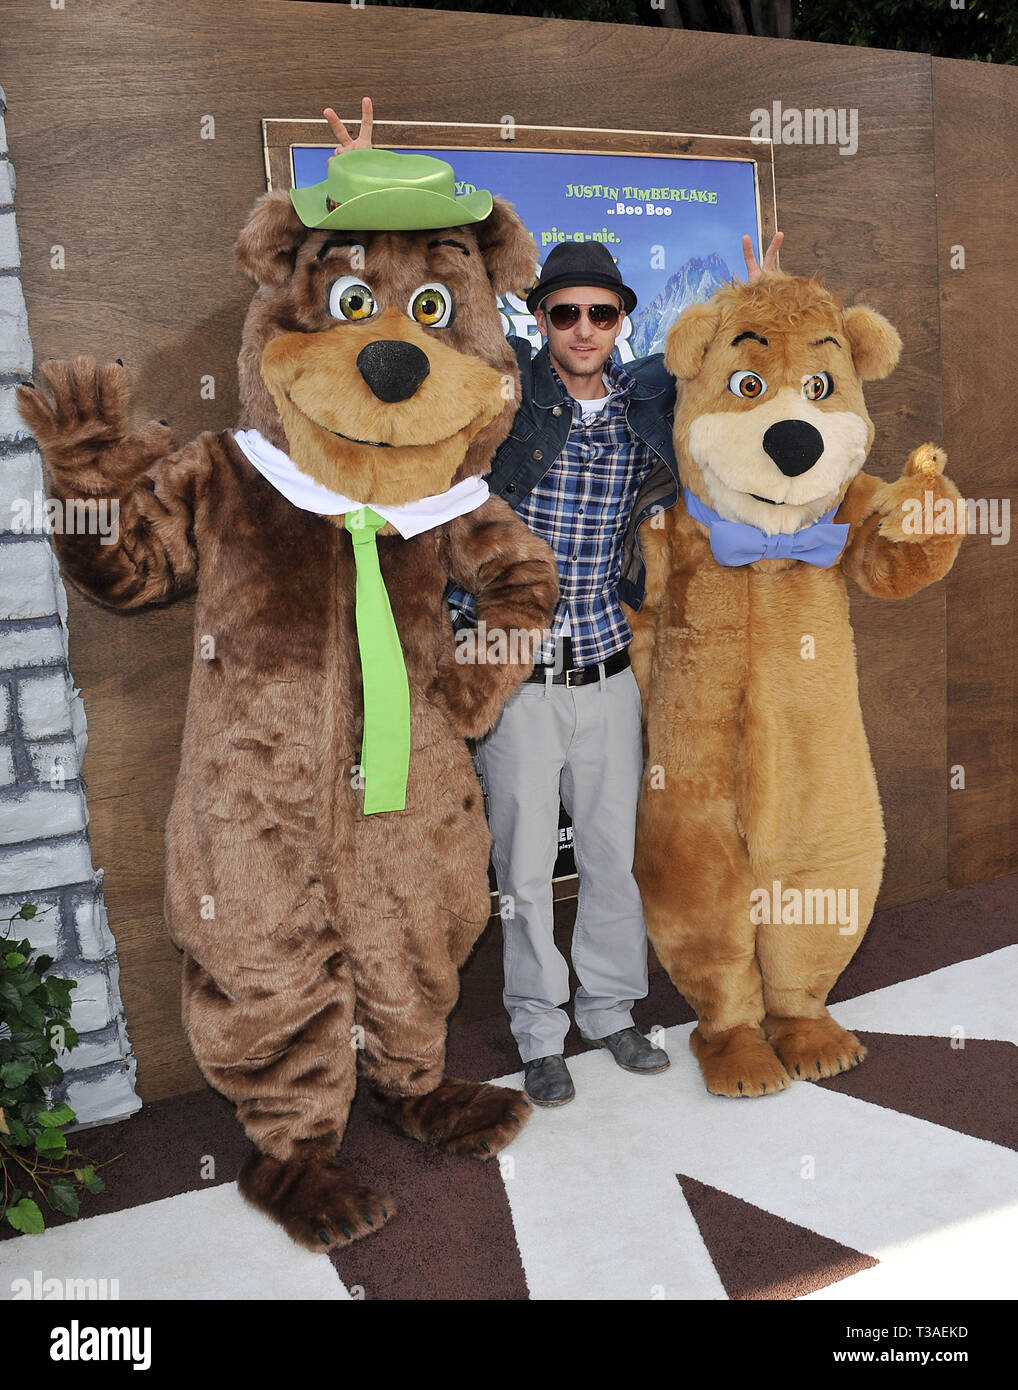 Justin Timberlake Yogi Bear Premiere At The Westwood Village Theatre In Los Angeles A Justin Timberlake